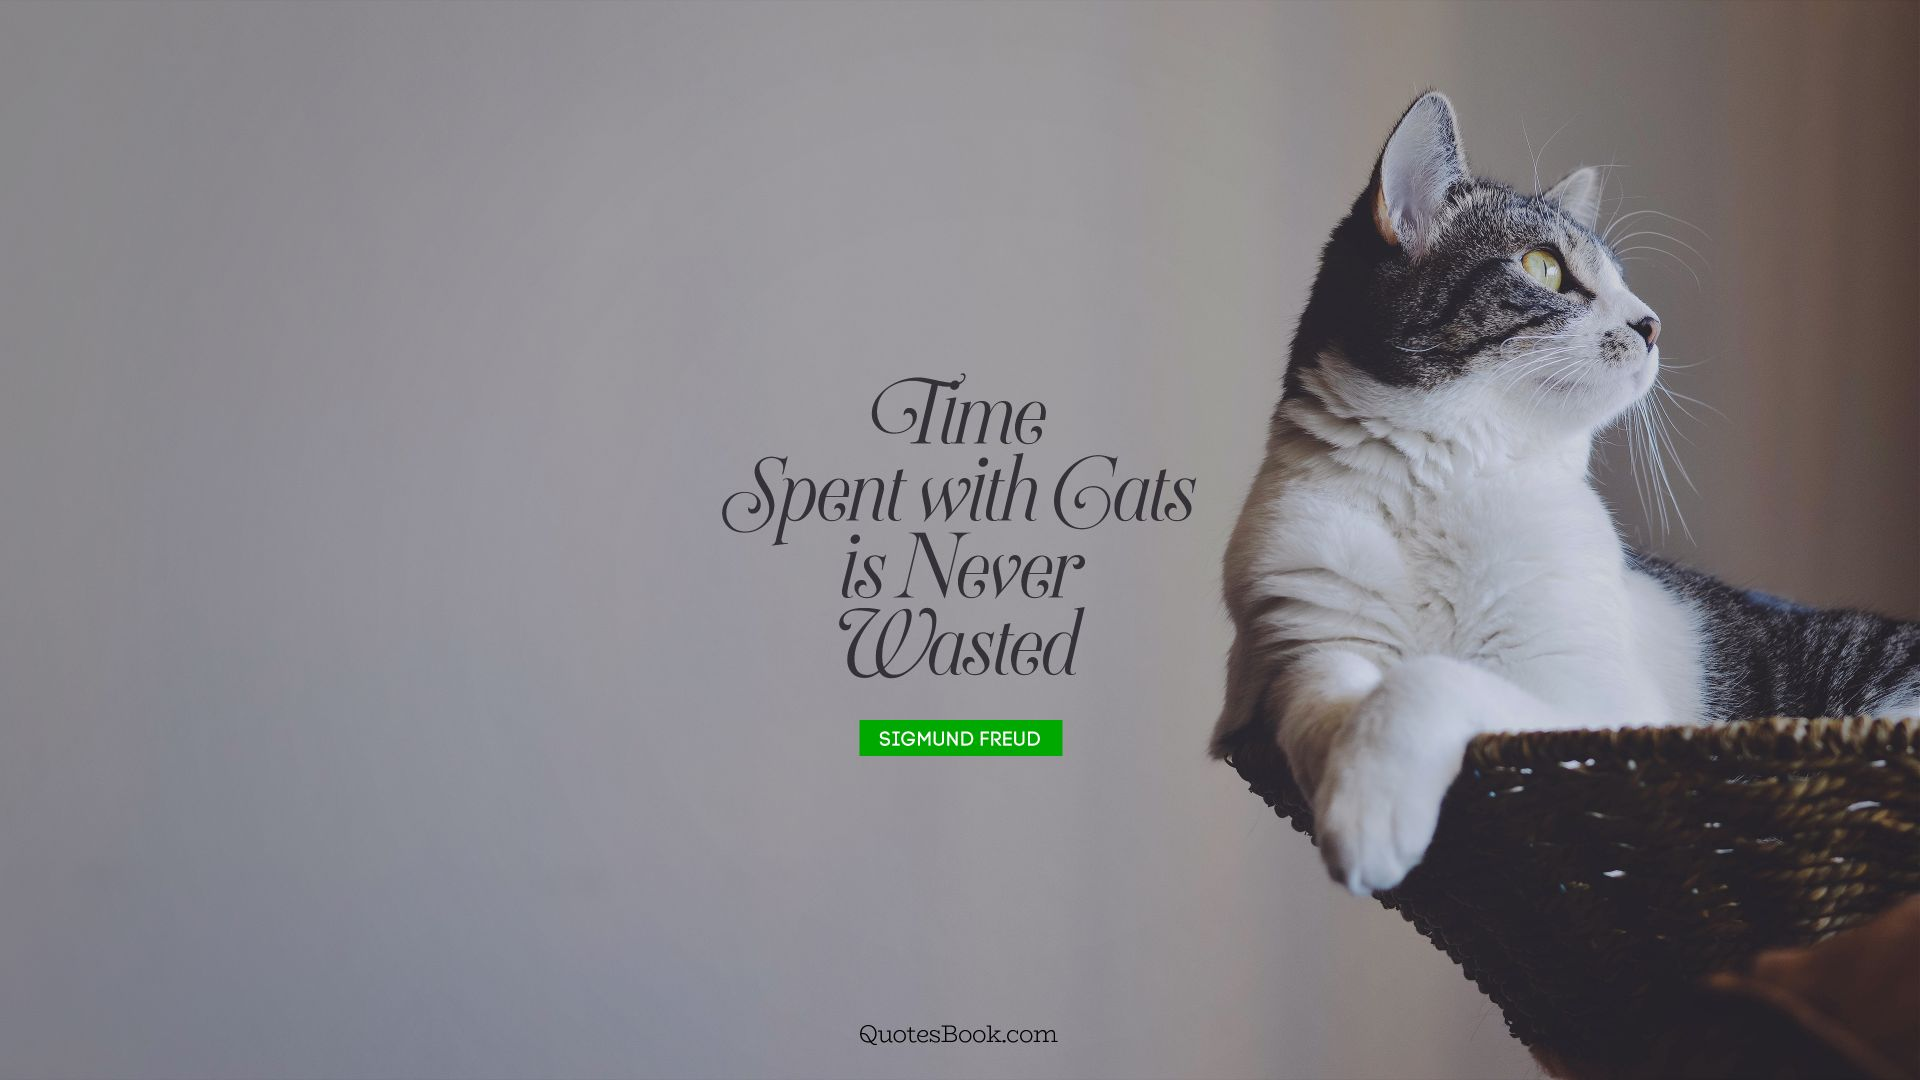 Time spent with cats is never wasted. - Quote by Sigmund Freud